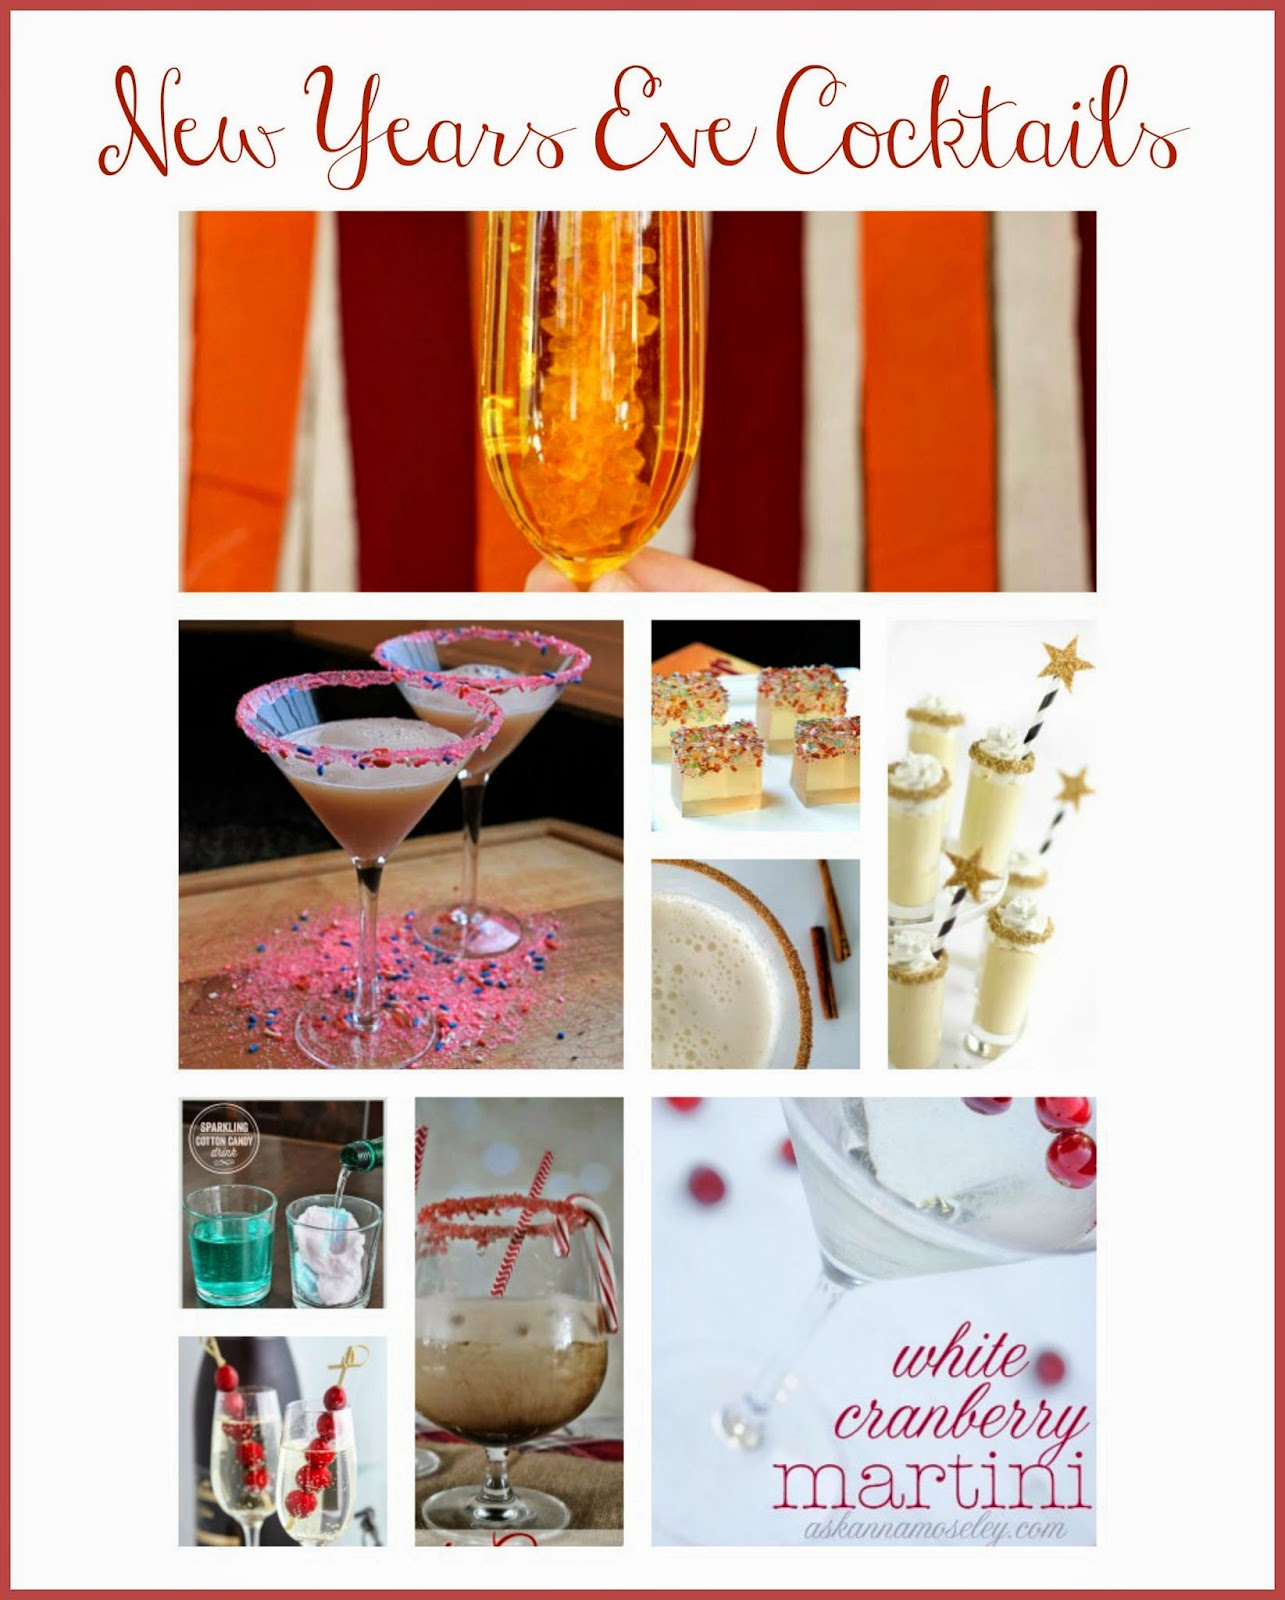 New Years Eve Cocktails - Glitter & Sass.  Glittered Jello Shots.  Sparkling Cotton Candy Drinks. Candy Cane White Russian.  Snickerdoodle Martinis.  Fun Martinis.  Confetti Martini.  Fun drinks for New Years Eve.